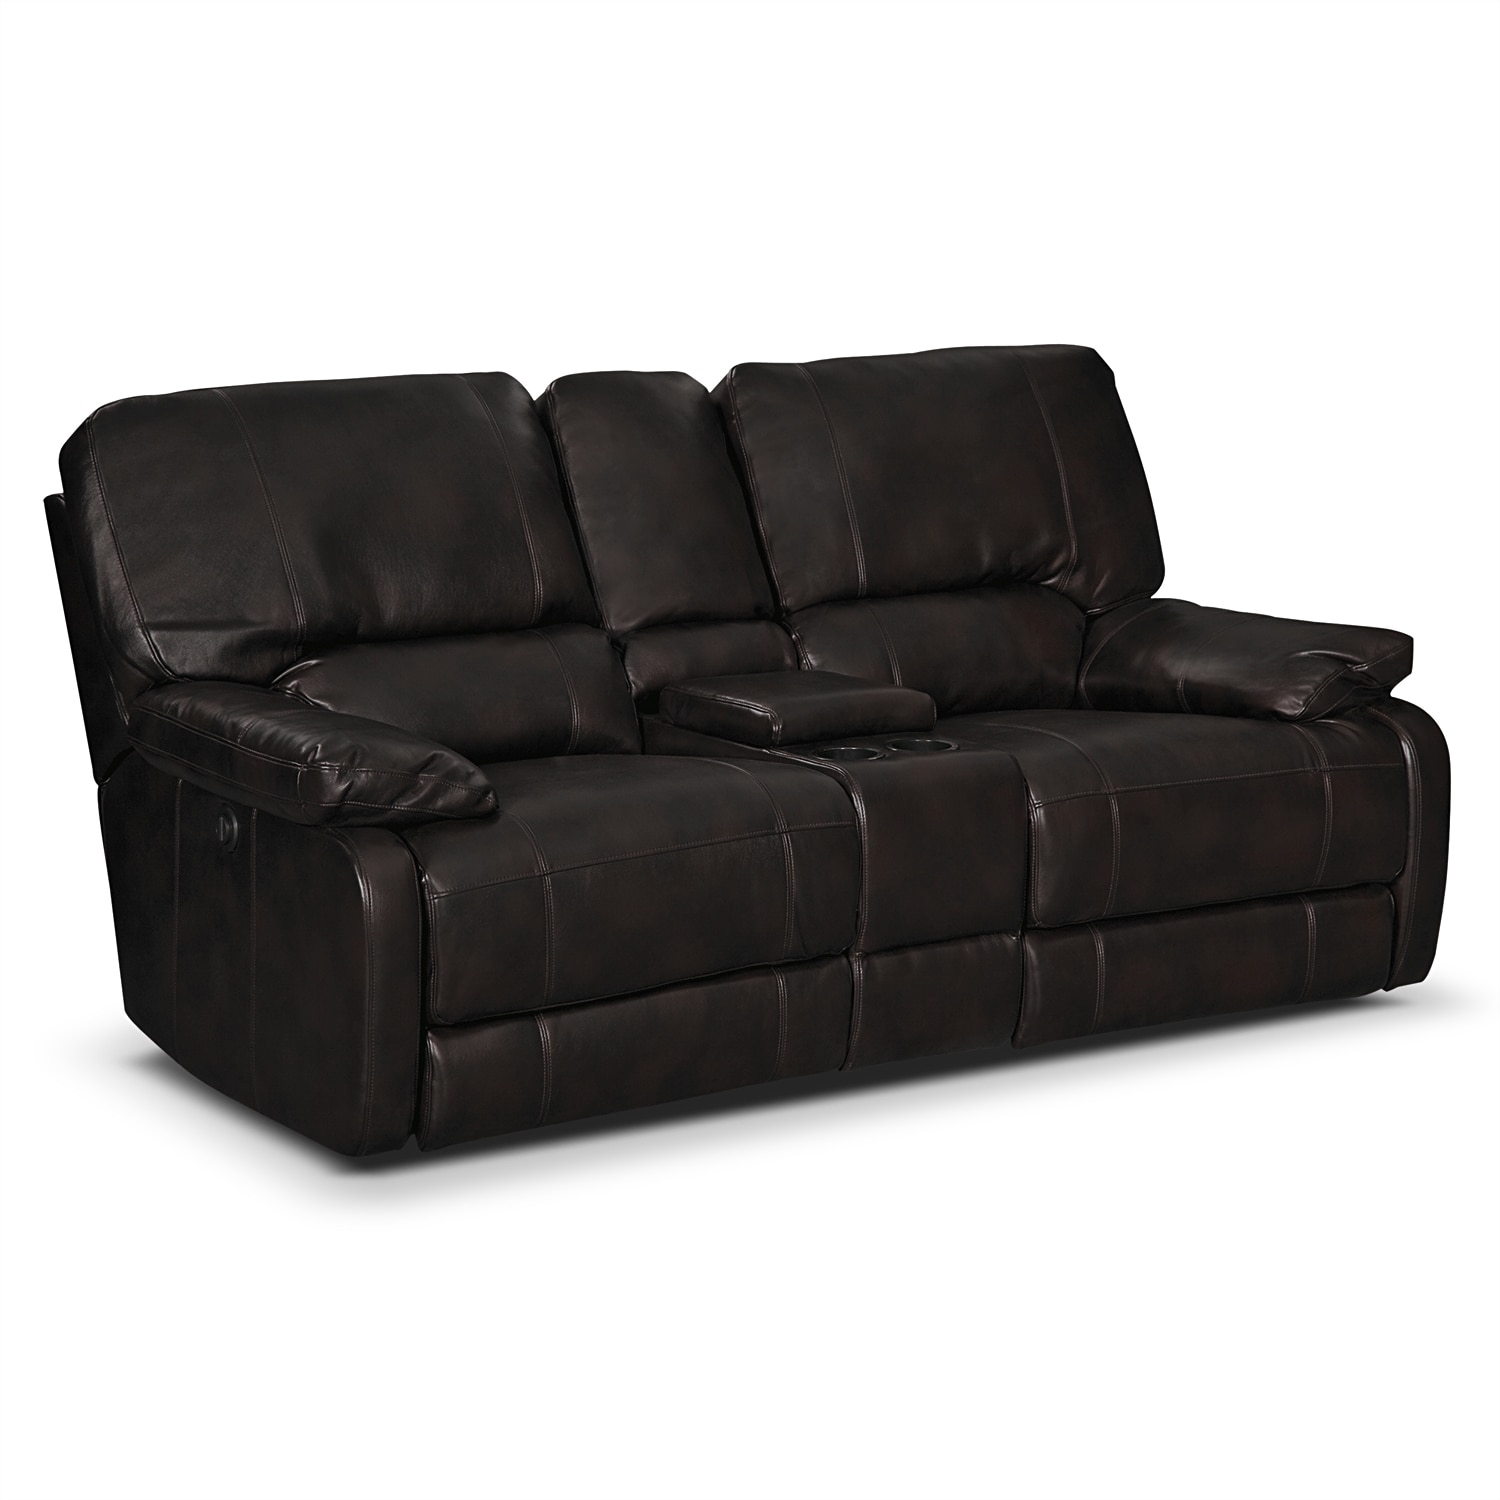 coronado ii leather power reclining loveseat value city furniture